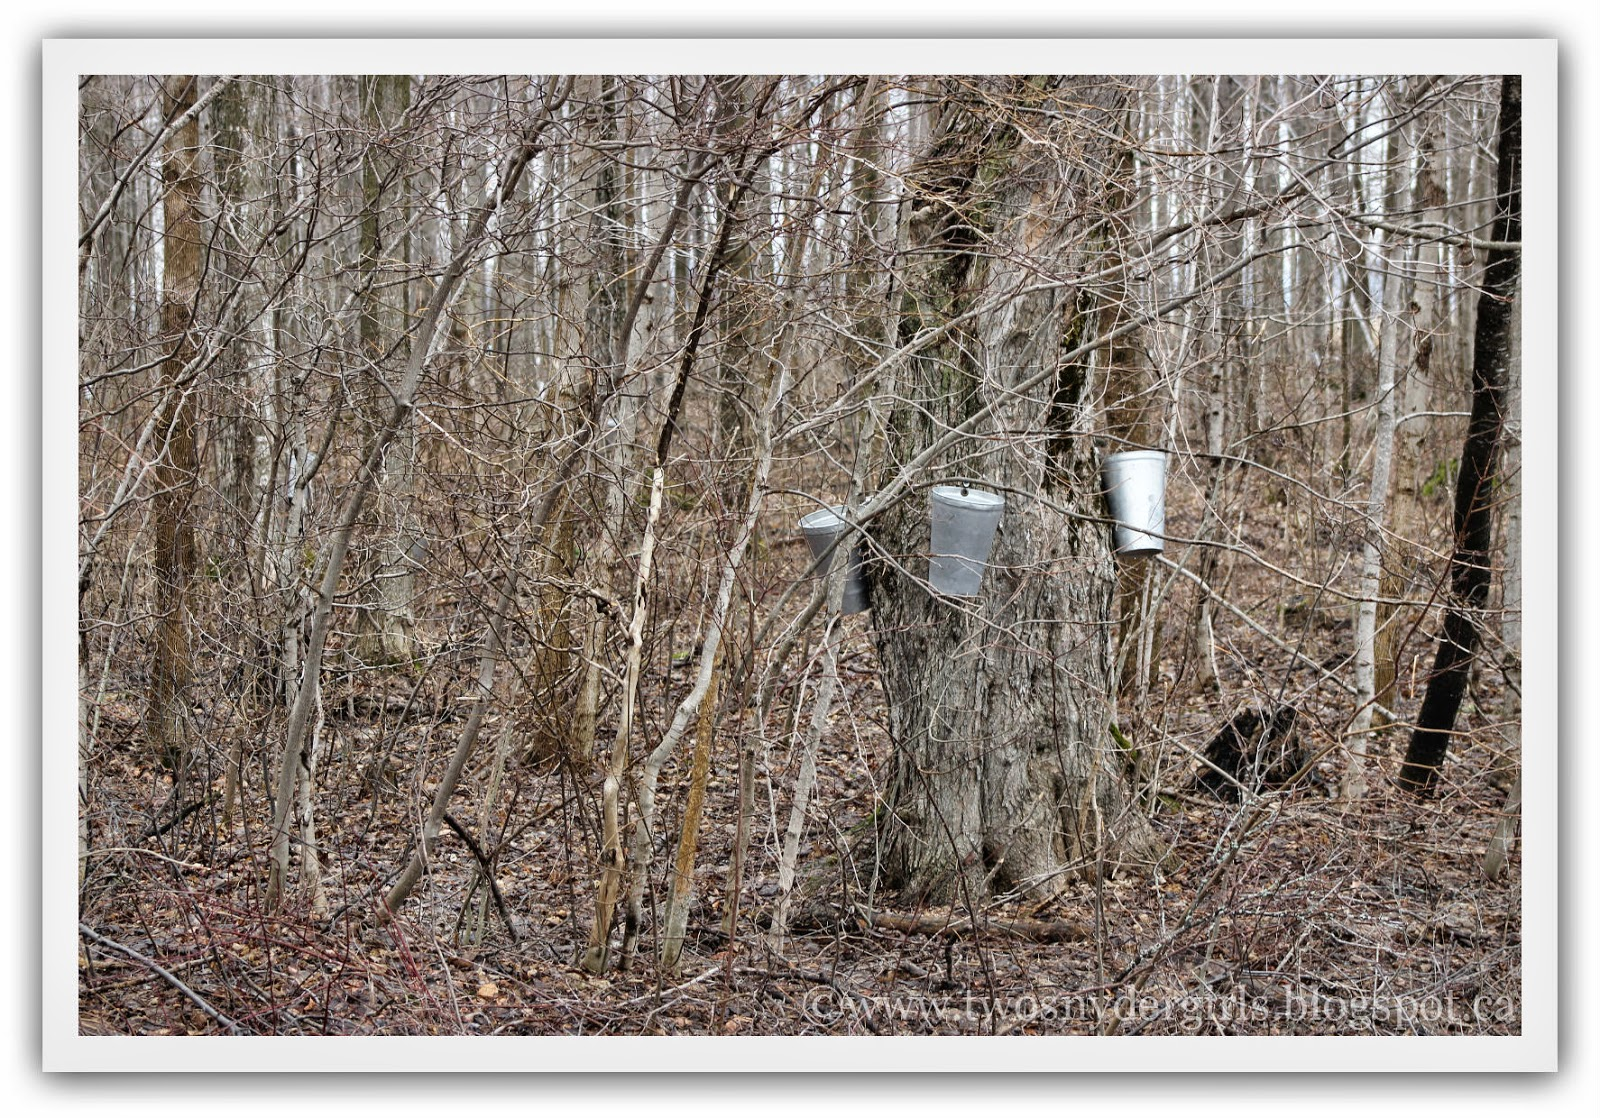 Three Maple Syrup Buckets on a tree